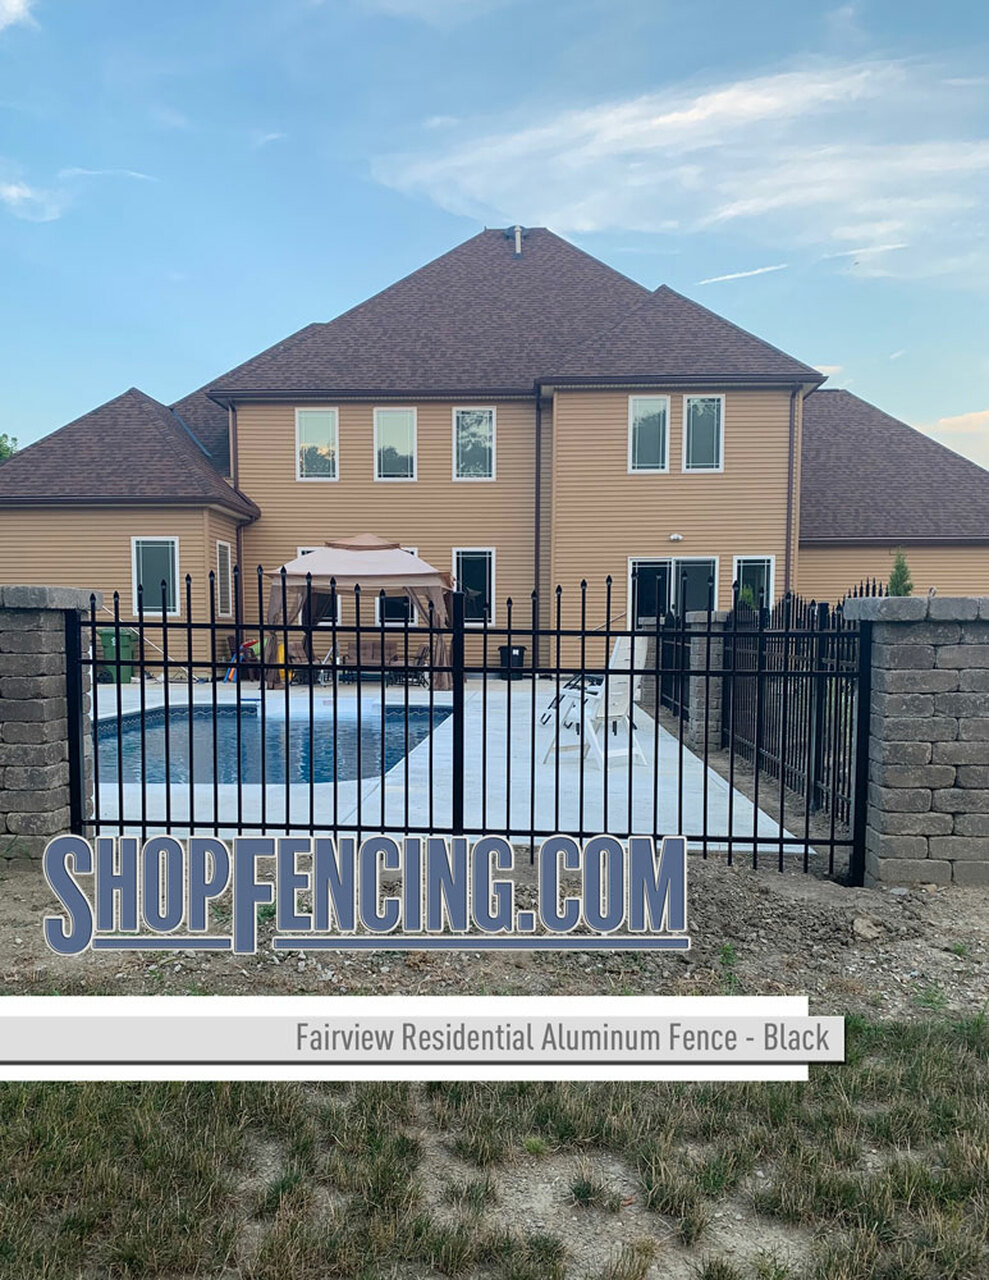 Black Residential Fairview Aluminum Fencing From ShopFencing.com